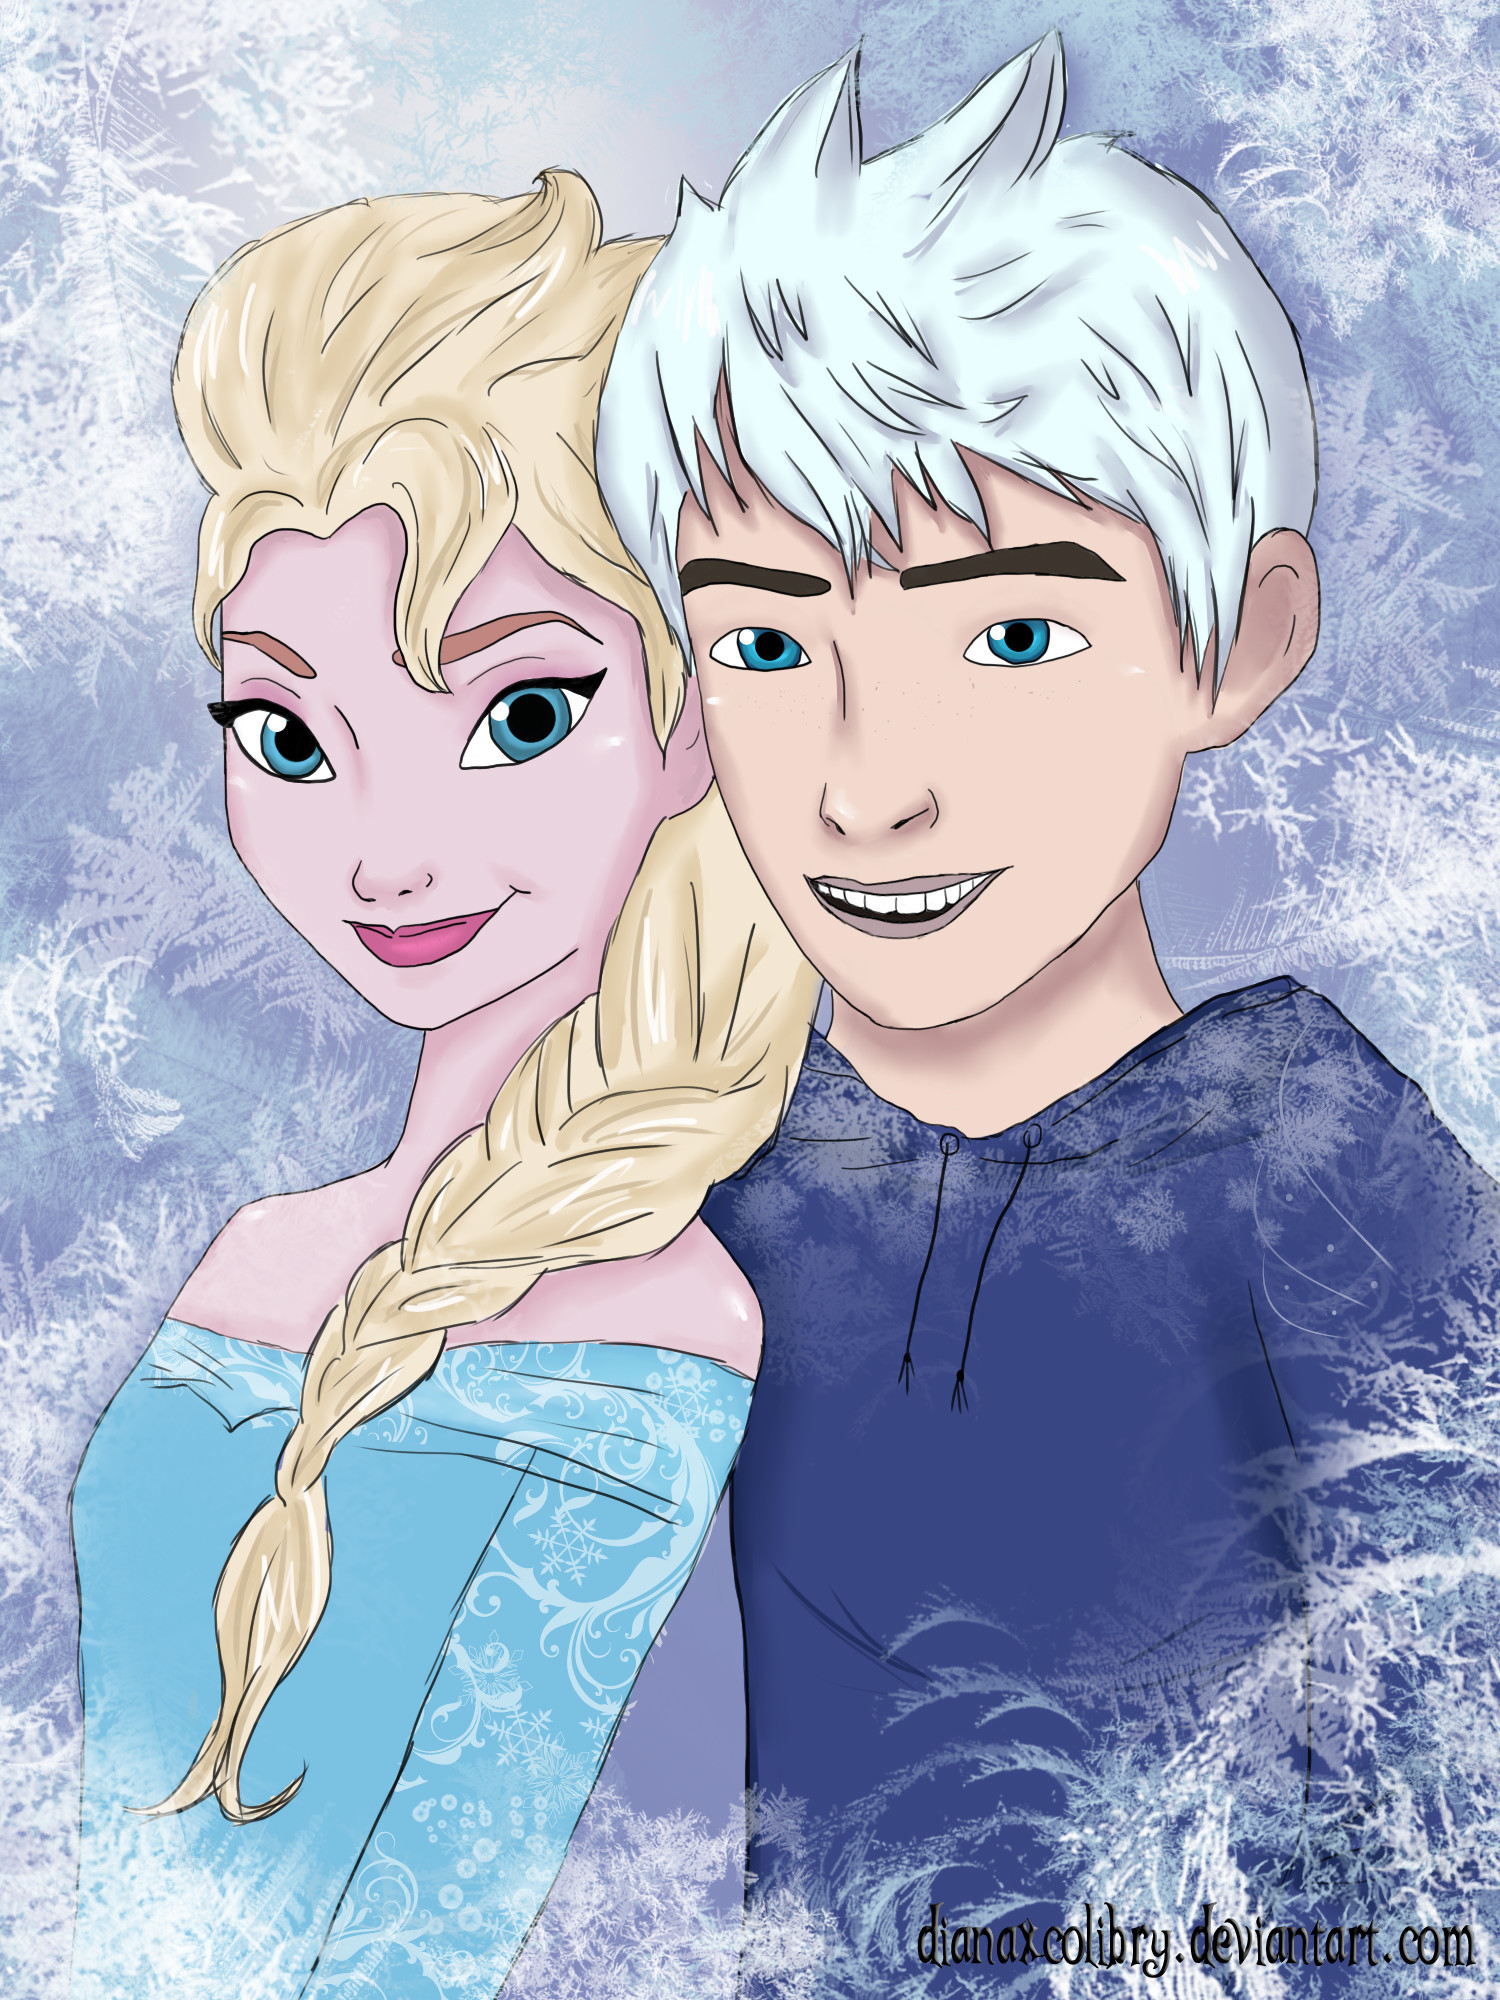 Res: 1500x2000, Elsa and Jack Frost by DianAxColibrY Elsa and Jack Frost by DianAxColibrY